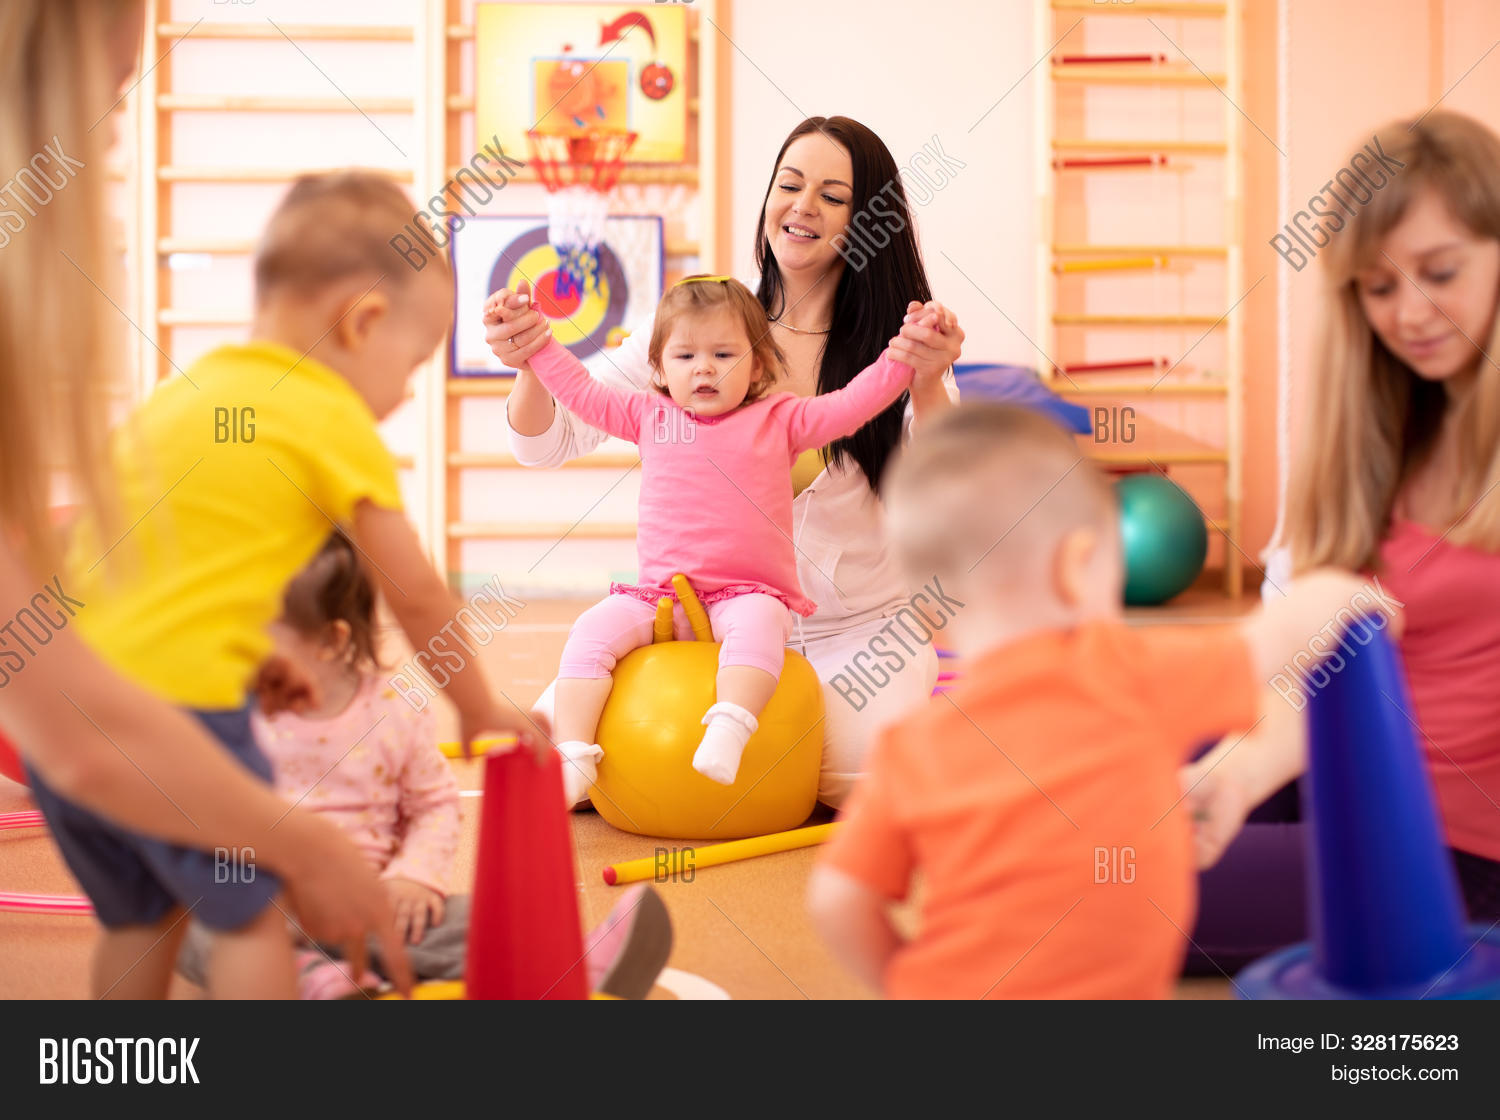 active,activity,adult,baby,body,boy,caucasian,child,class,daycare,doing,education,energy,equipment,exercise,fitball,fitness,floor,fun,game,girl,group,gym,gymnastics,healthcare,healthy,indoors,kid,kindergarten,leisure,lesson,lifestyle,little,mom,mother,mum,nursery,parent,people,play,positive,recreation,sport,sportive,toddler,together,training,wall,workout,yoga